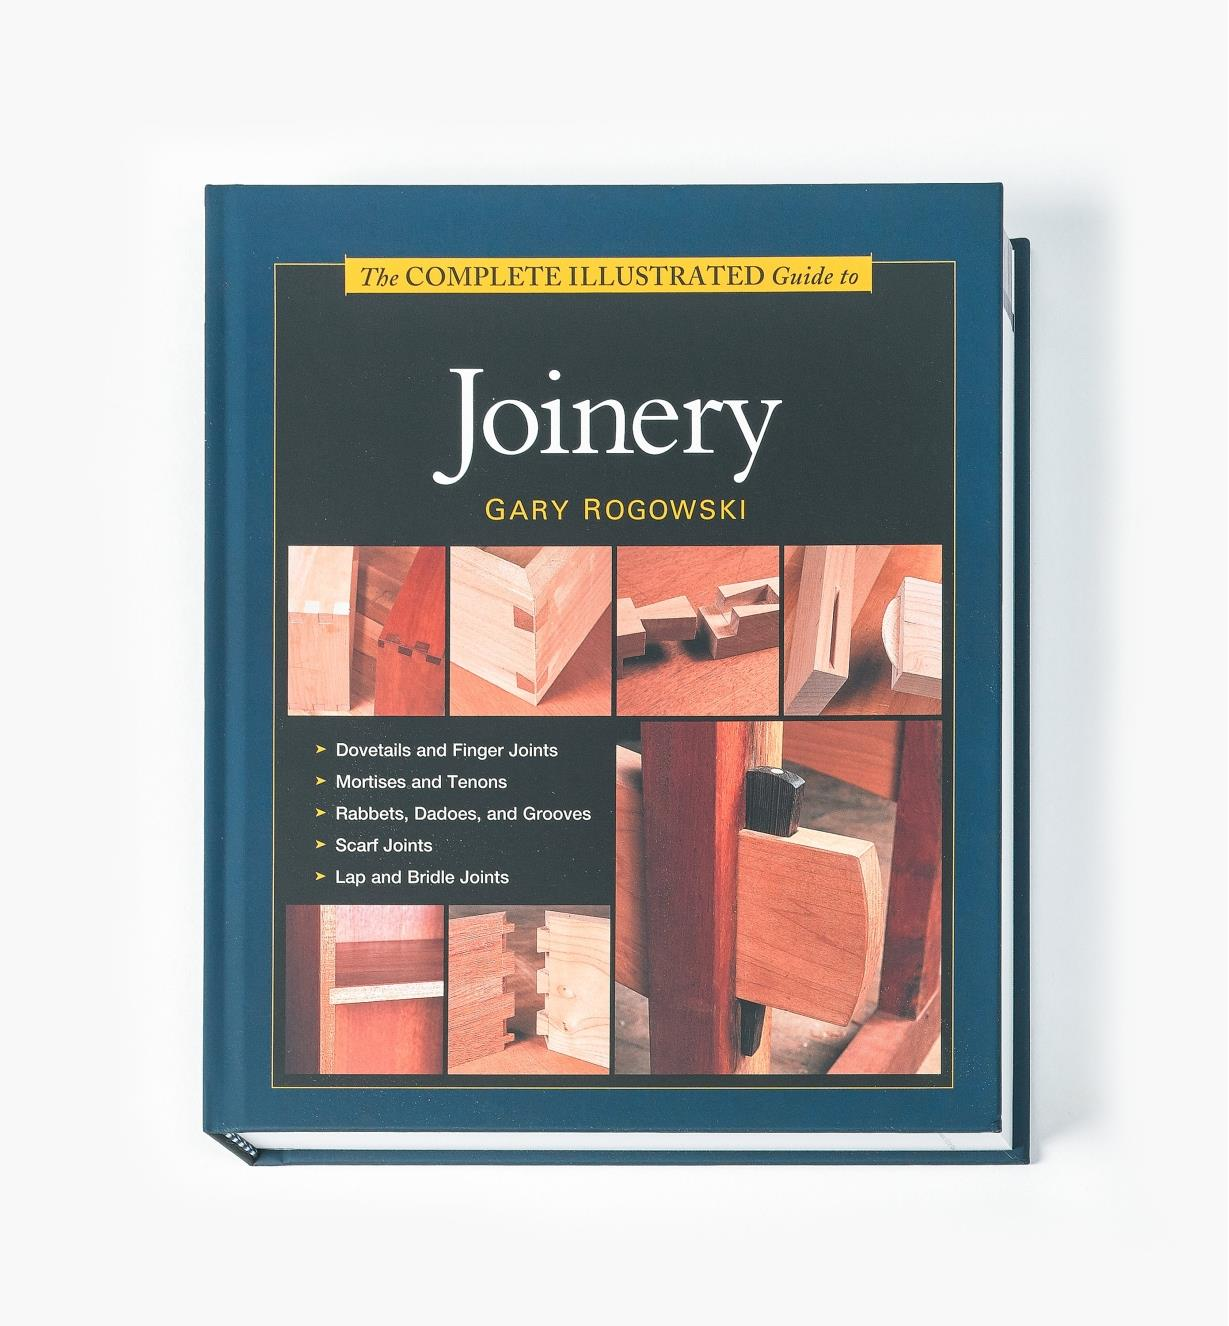 73L0232 - Guide to Joinery